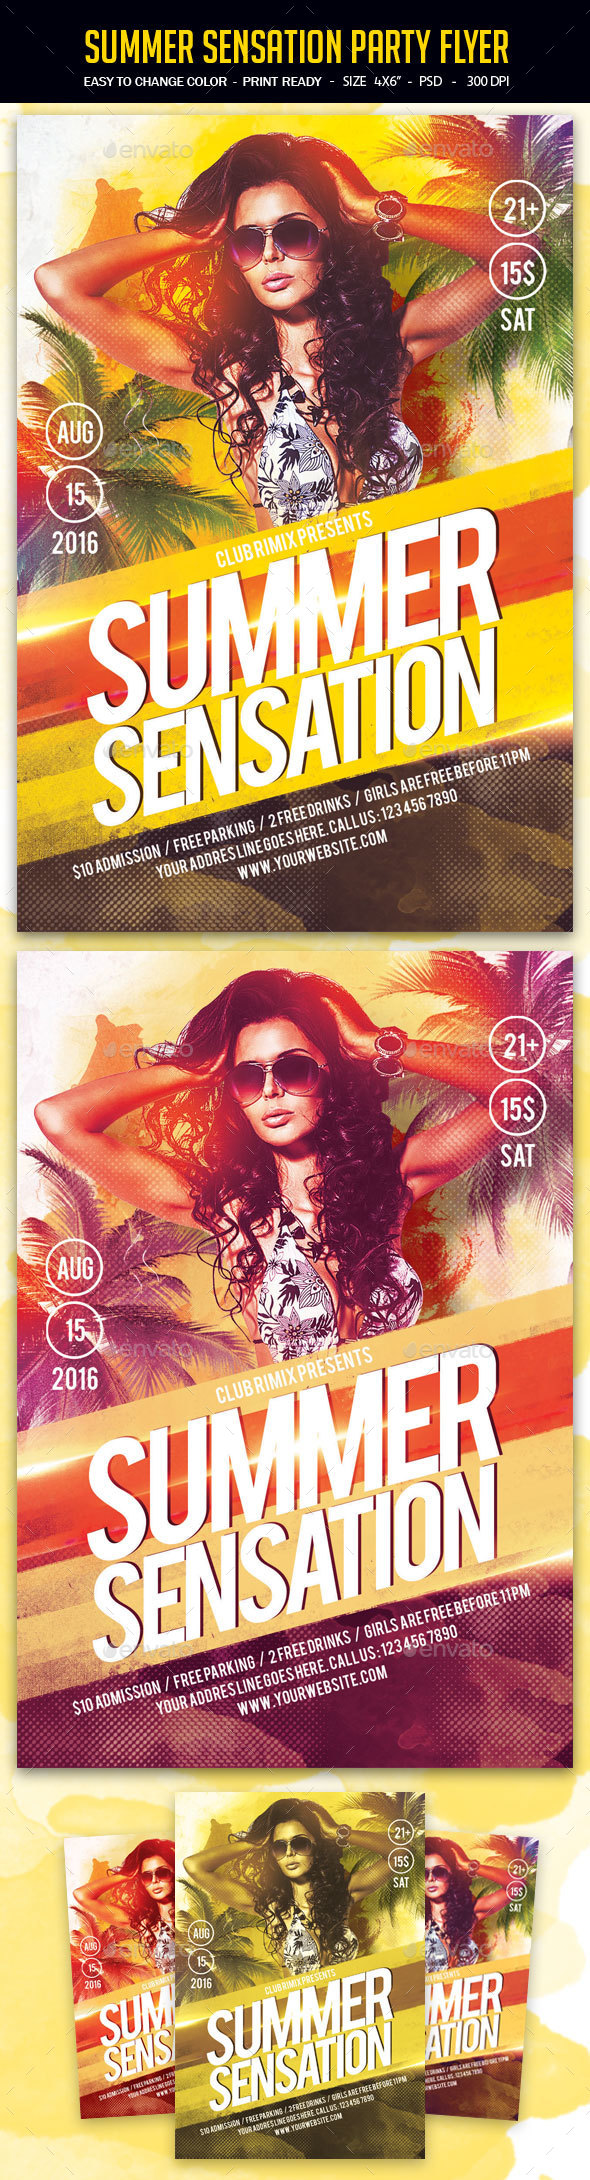 Summer Sensation Party Flyer - Clubs & Parties Events